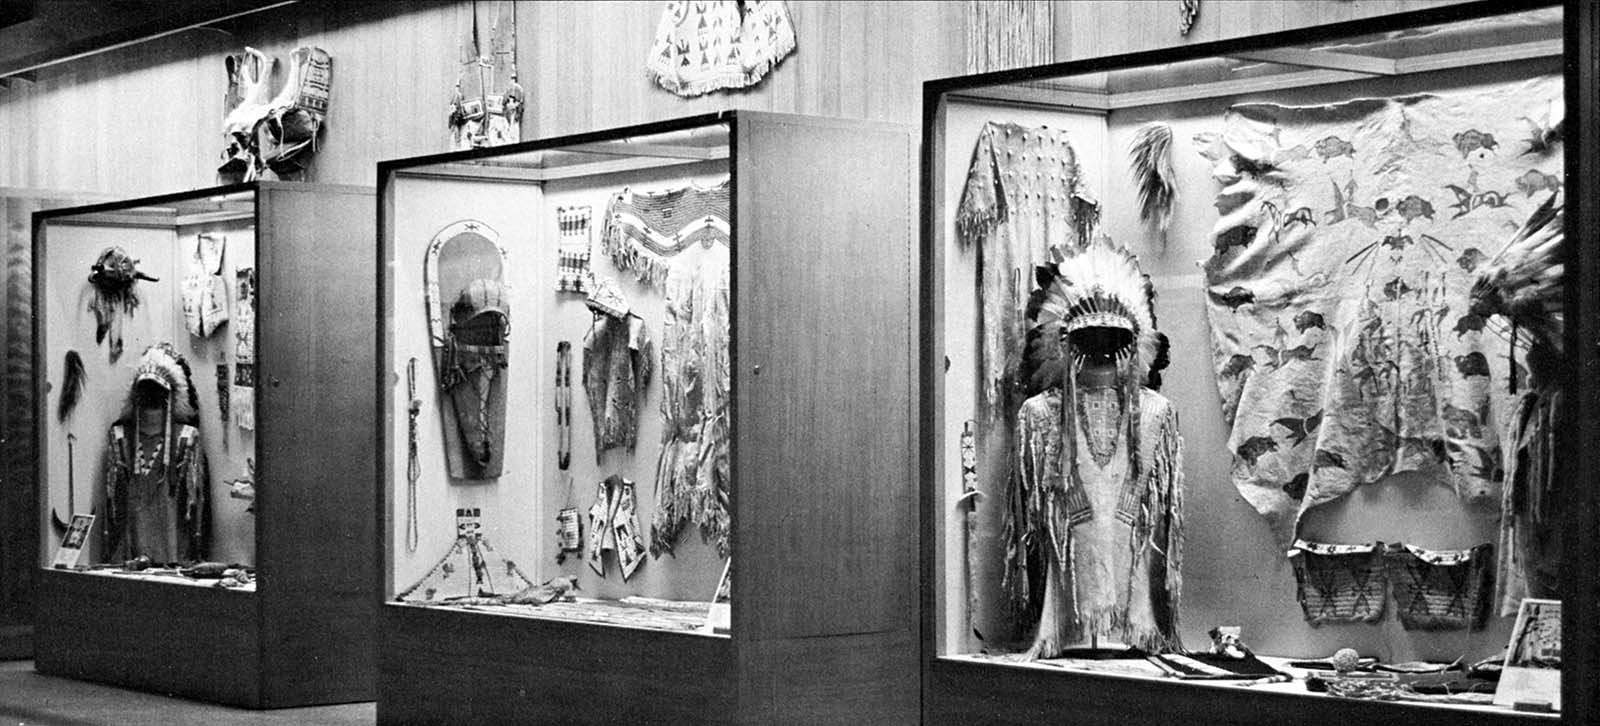 Fig. 3: Plains Indian Museum installation, 1969.